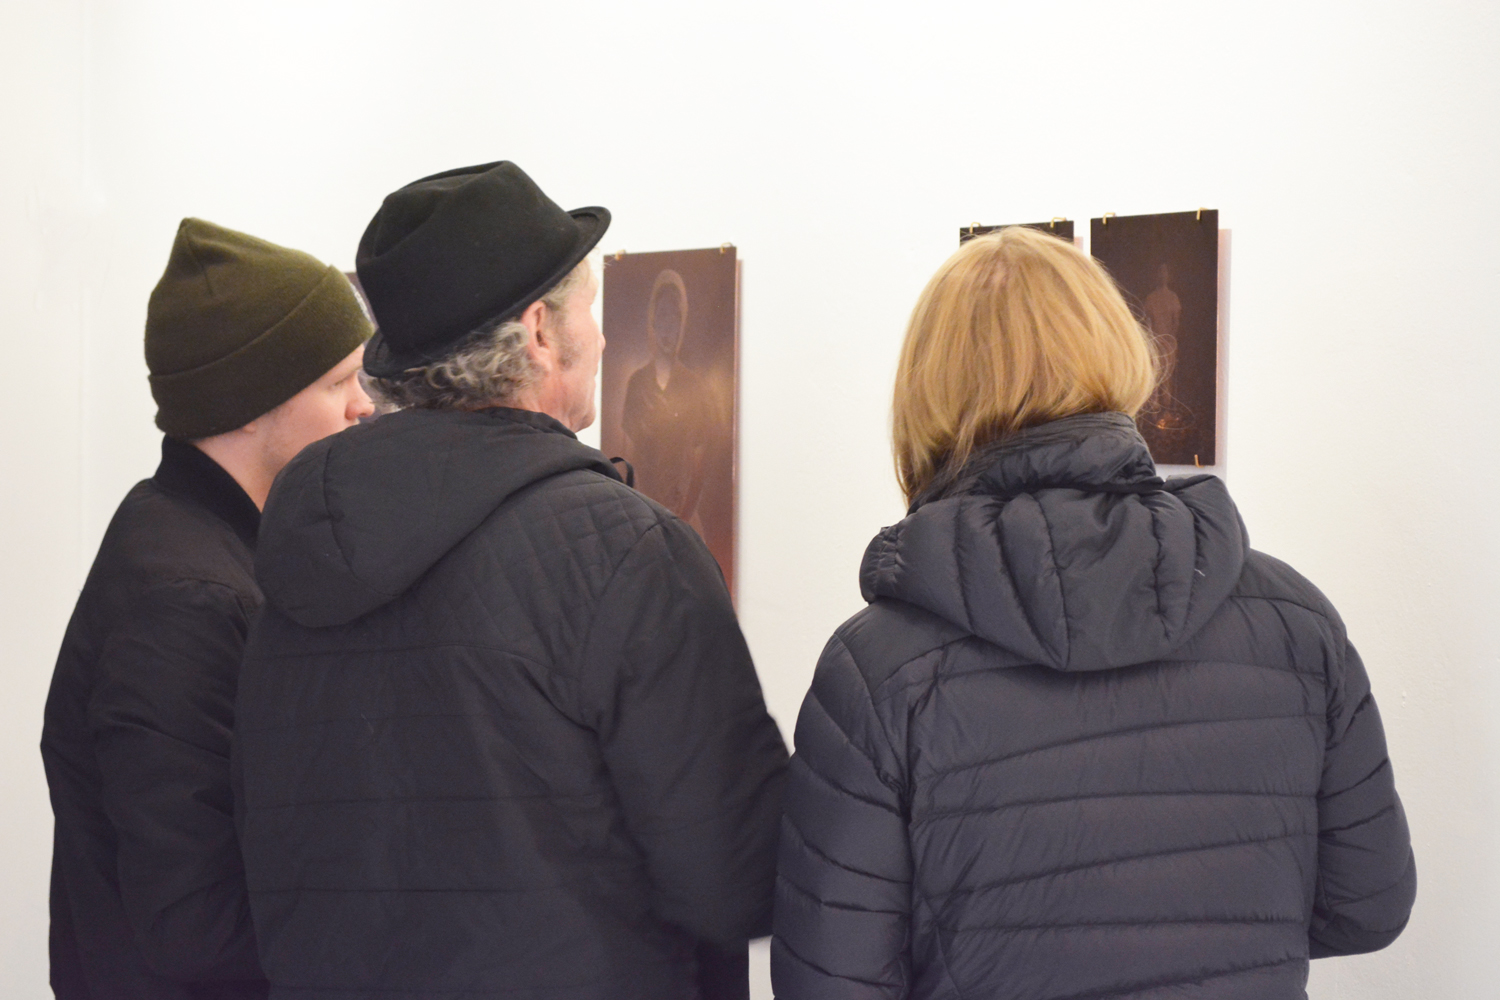 a-lick-and-a-promise-vernissage-14-web.jpg